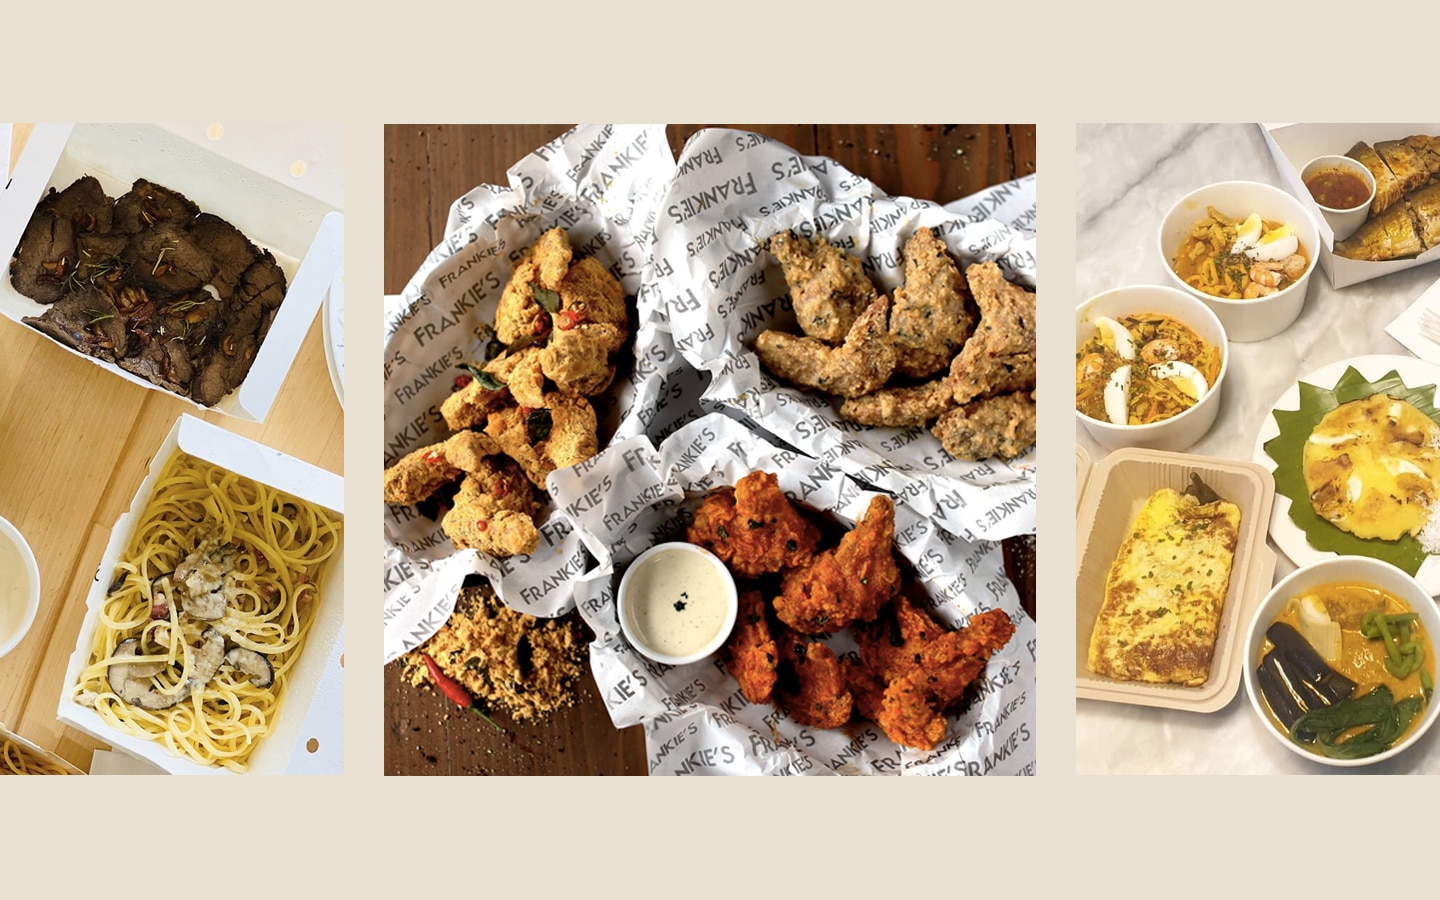 6 More Restaurants That Have Re-Opened For Delivery and Take-Out